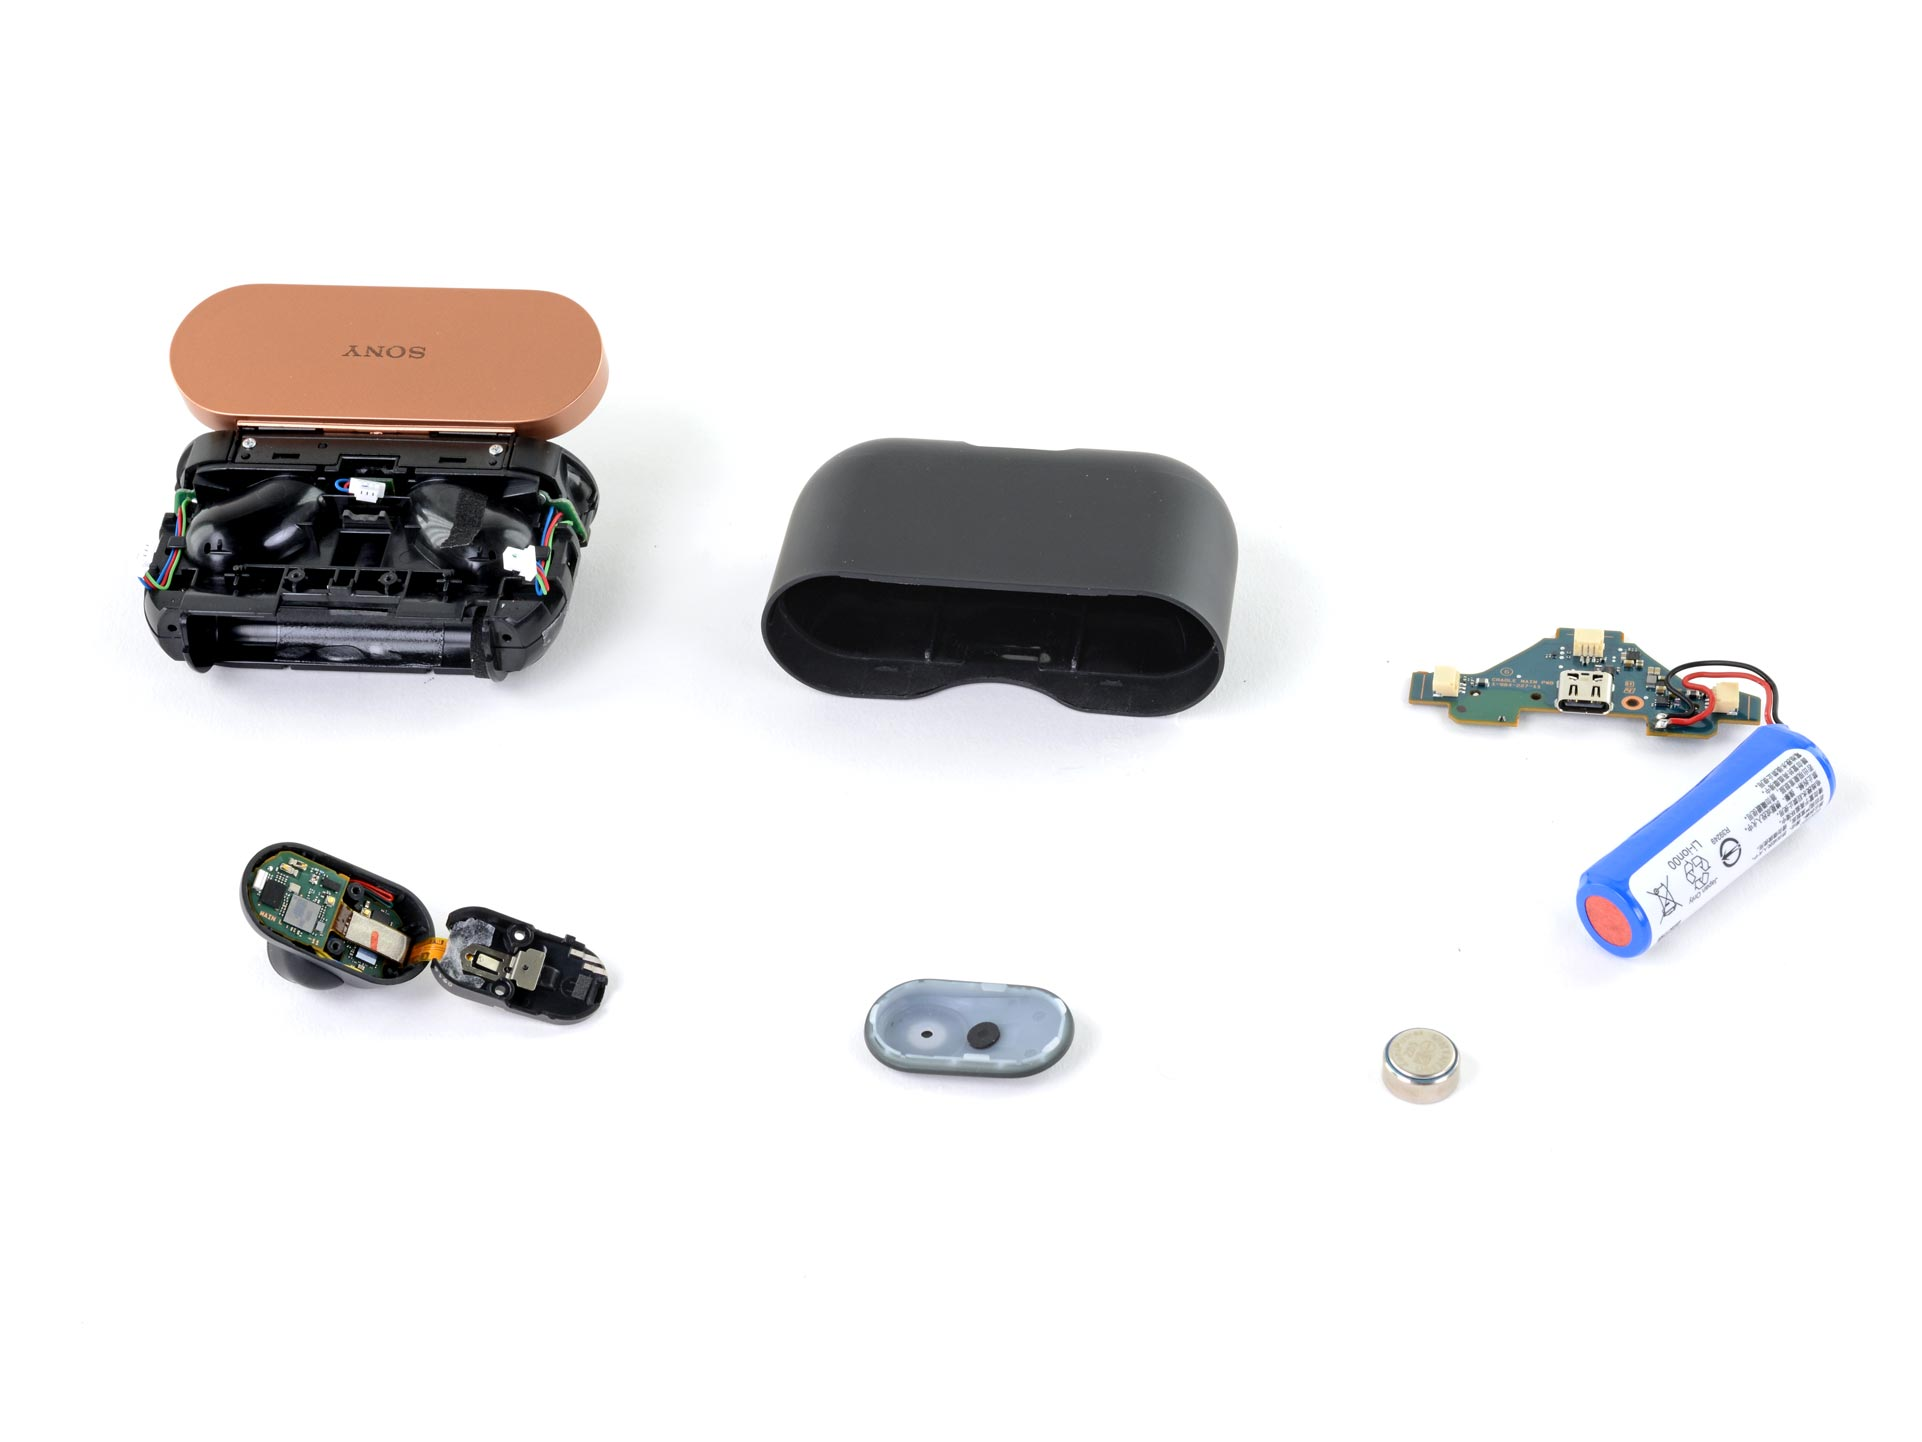 Layout shot of all the pieces of the Sony WF-1000MX3 charging case and earbud